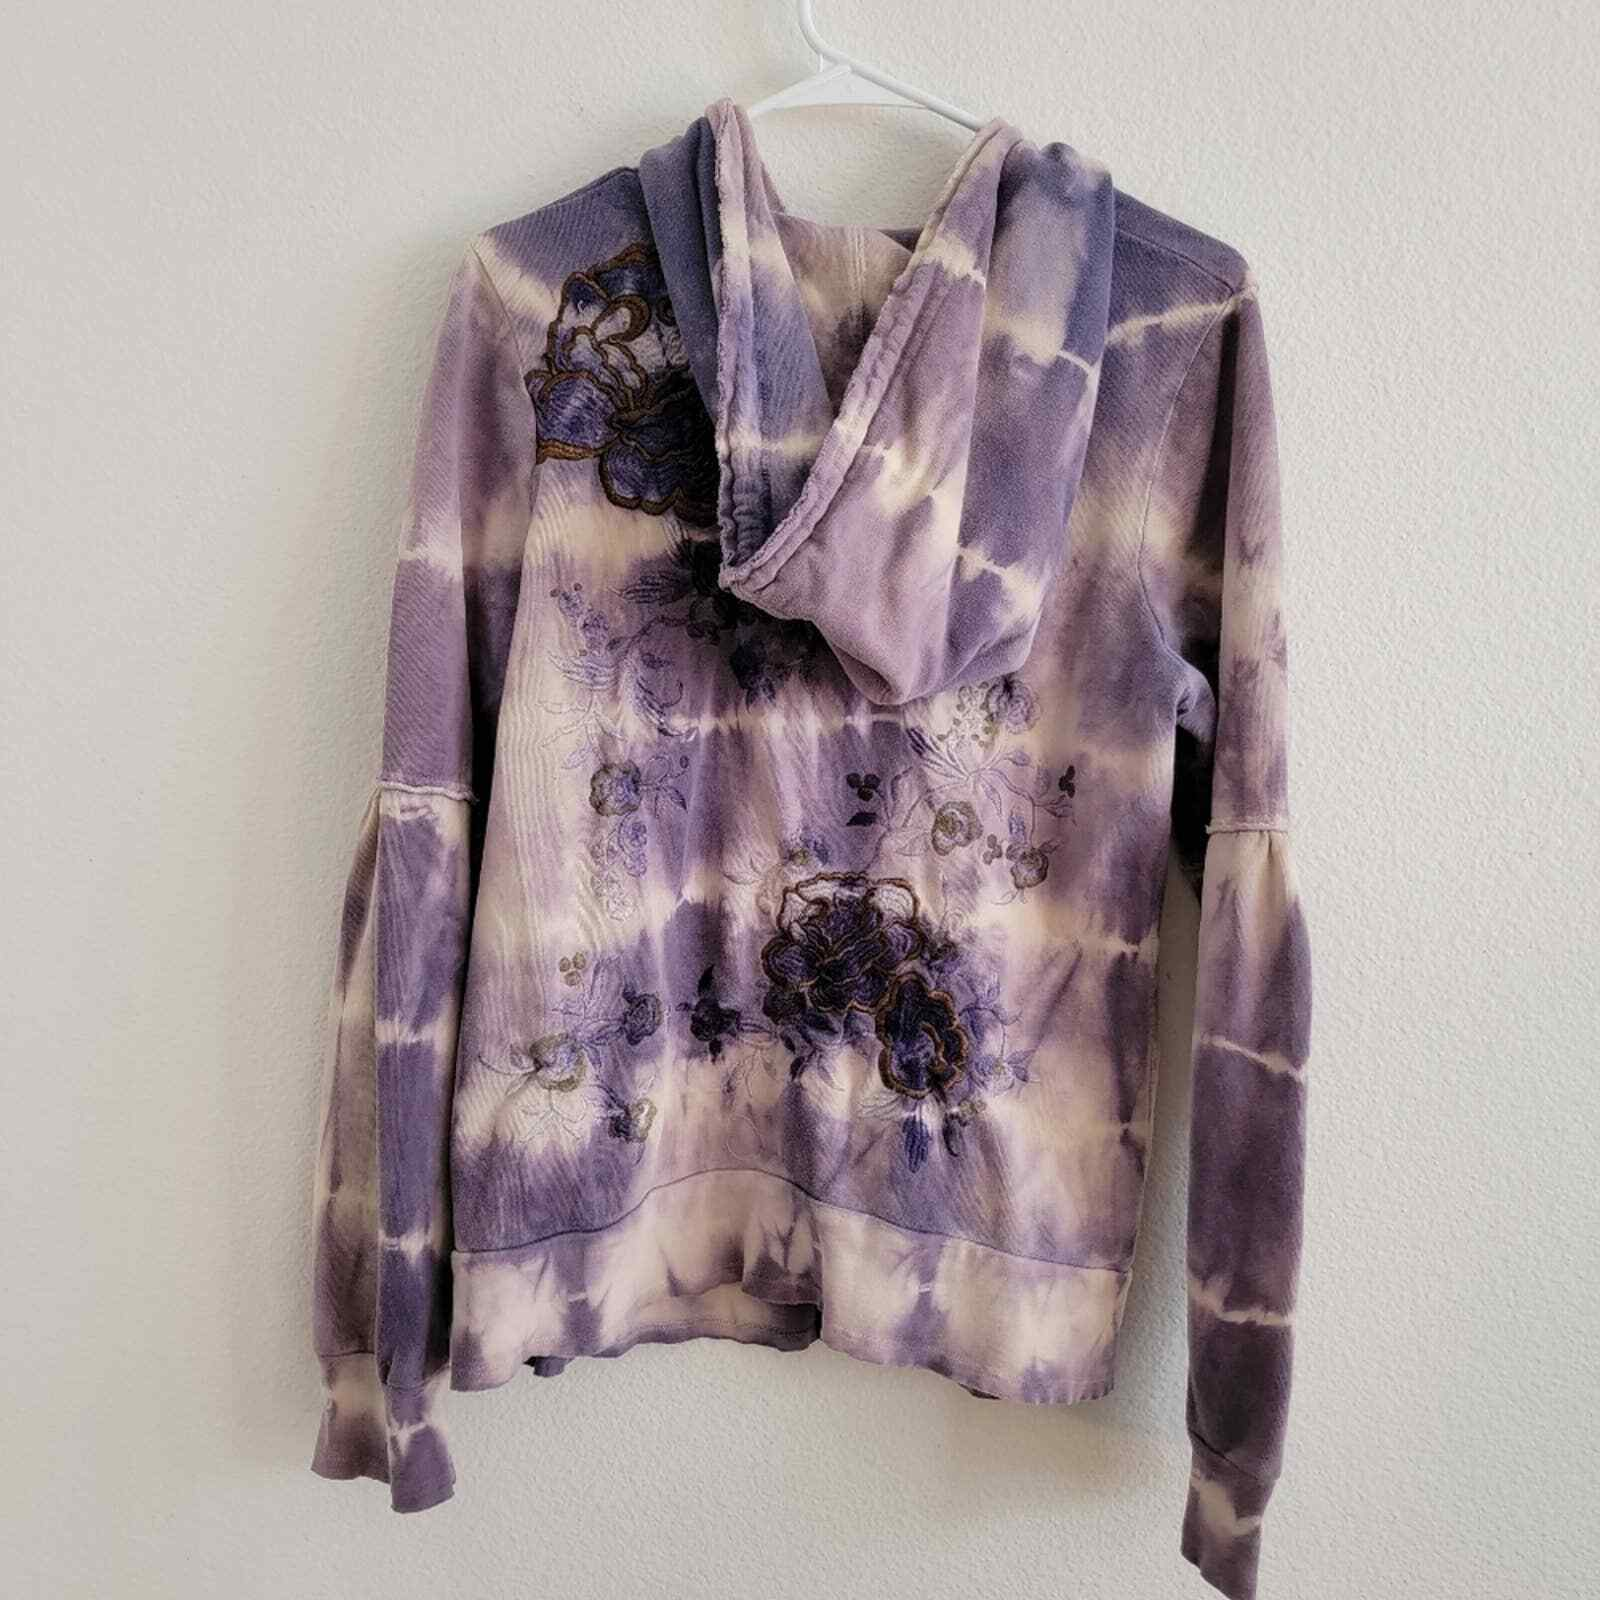 Penelope Violet Tie-Dye Embroidered Zip Up Sweater - image 9